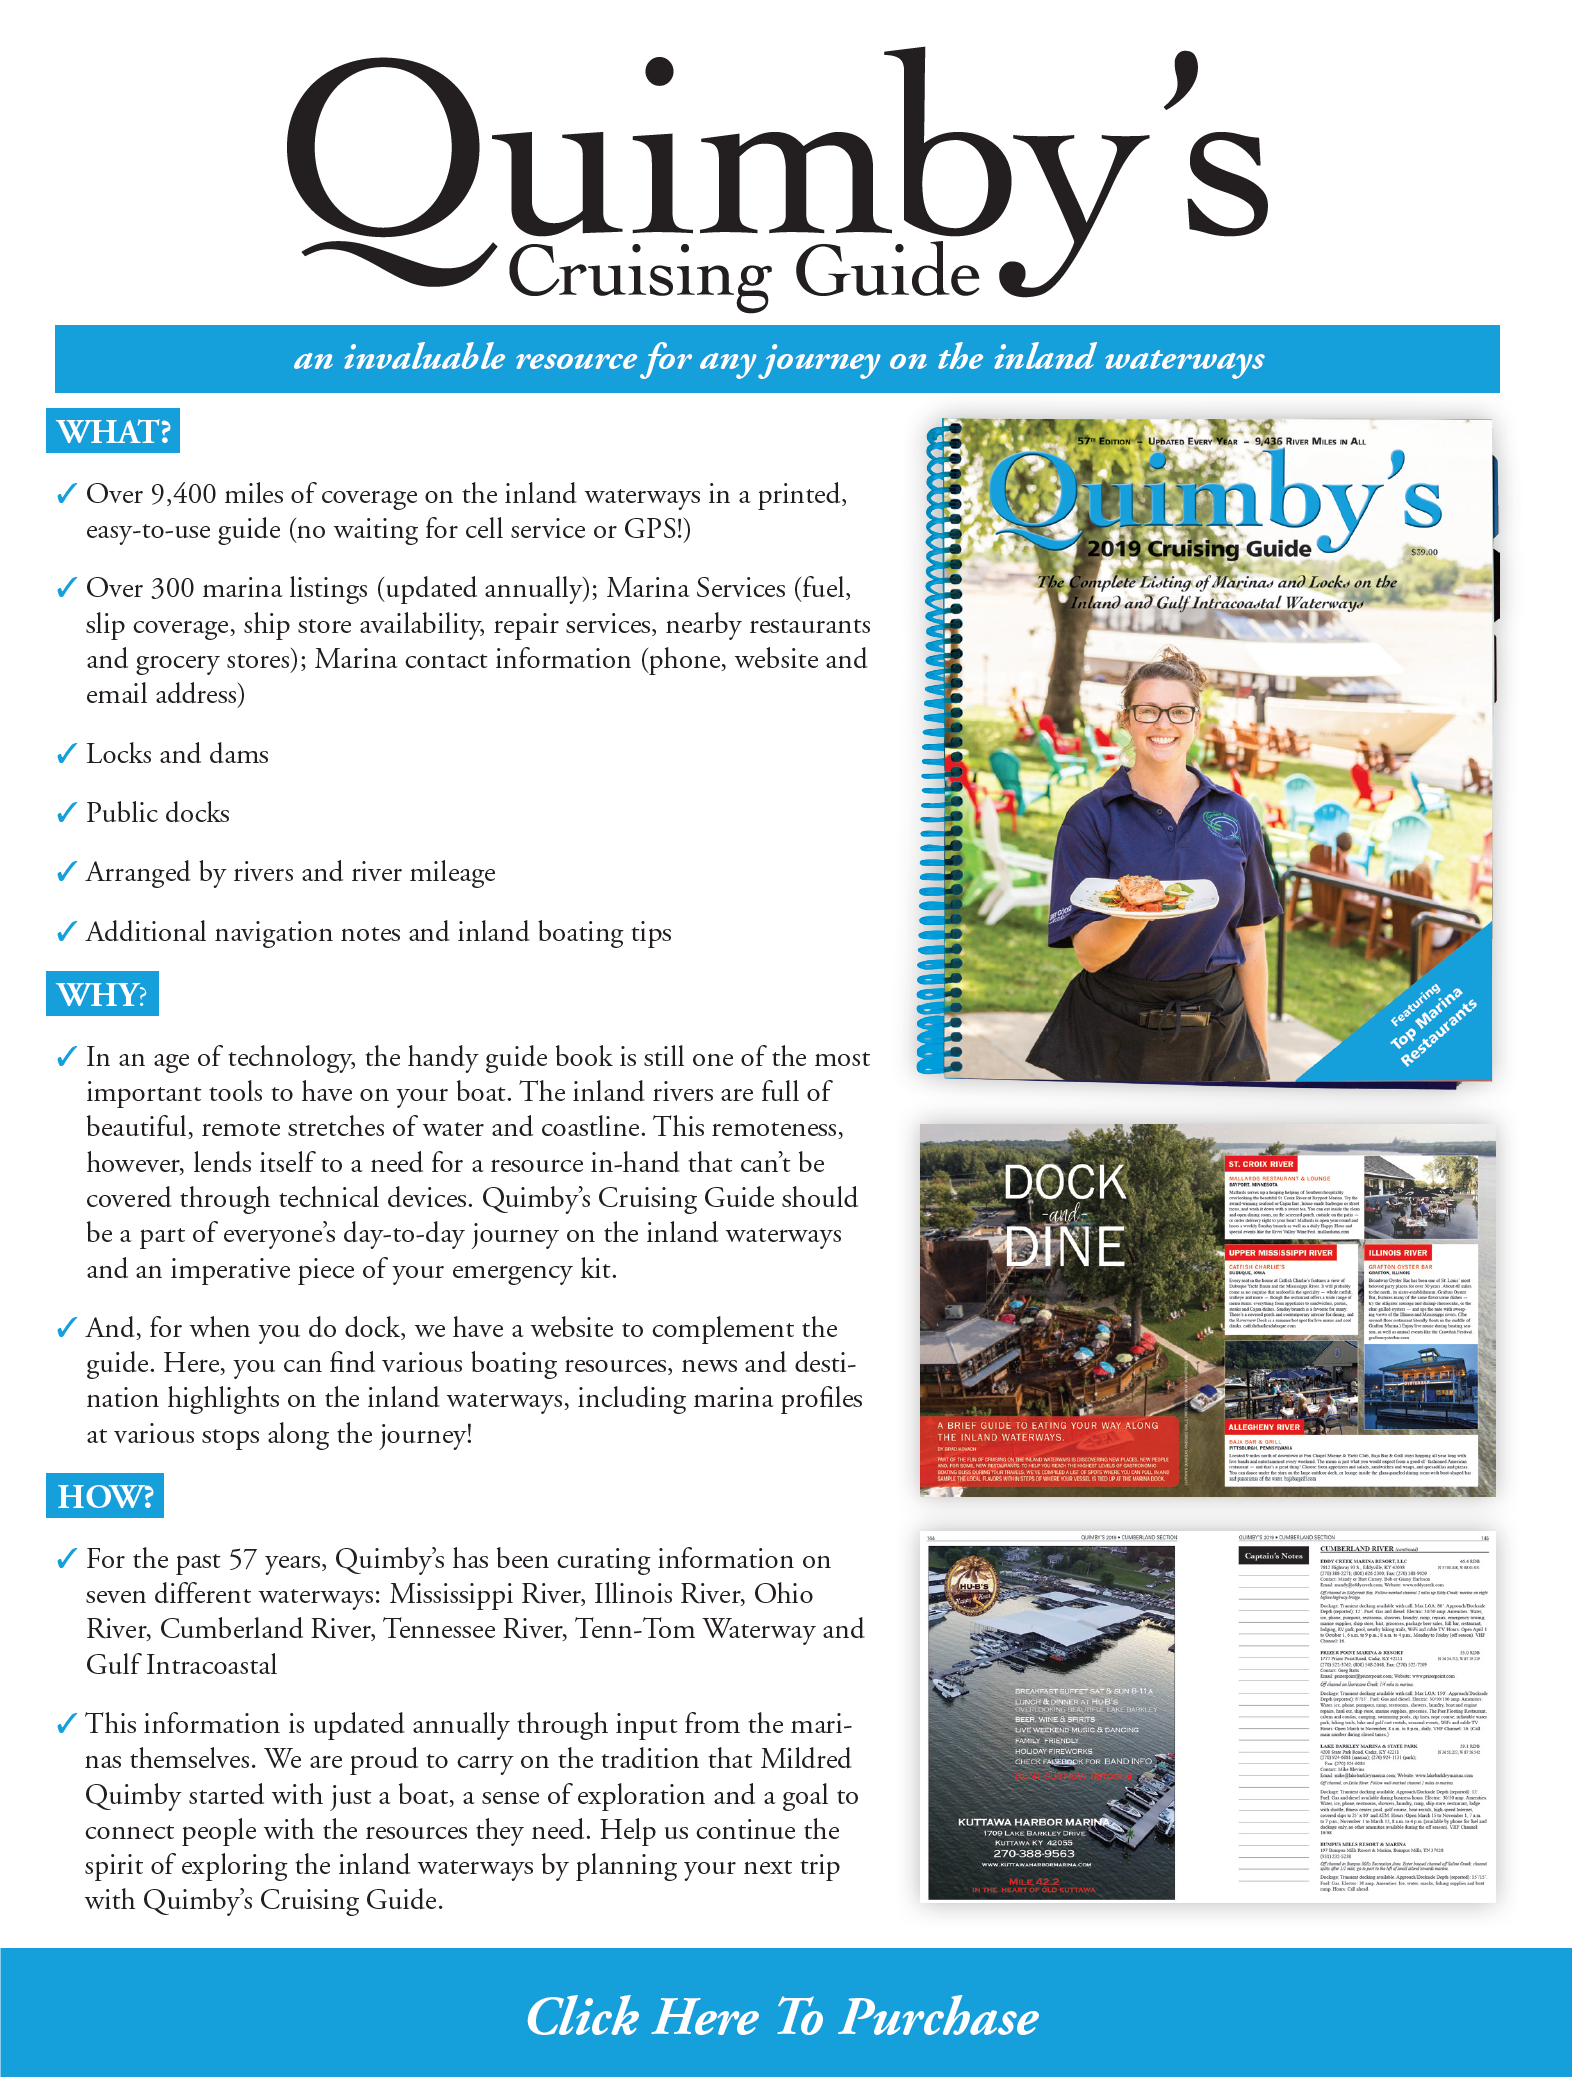 Quimby's 2019 Cruising Guide